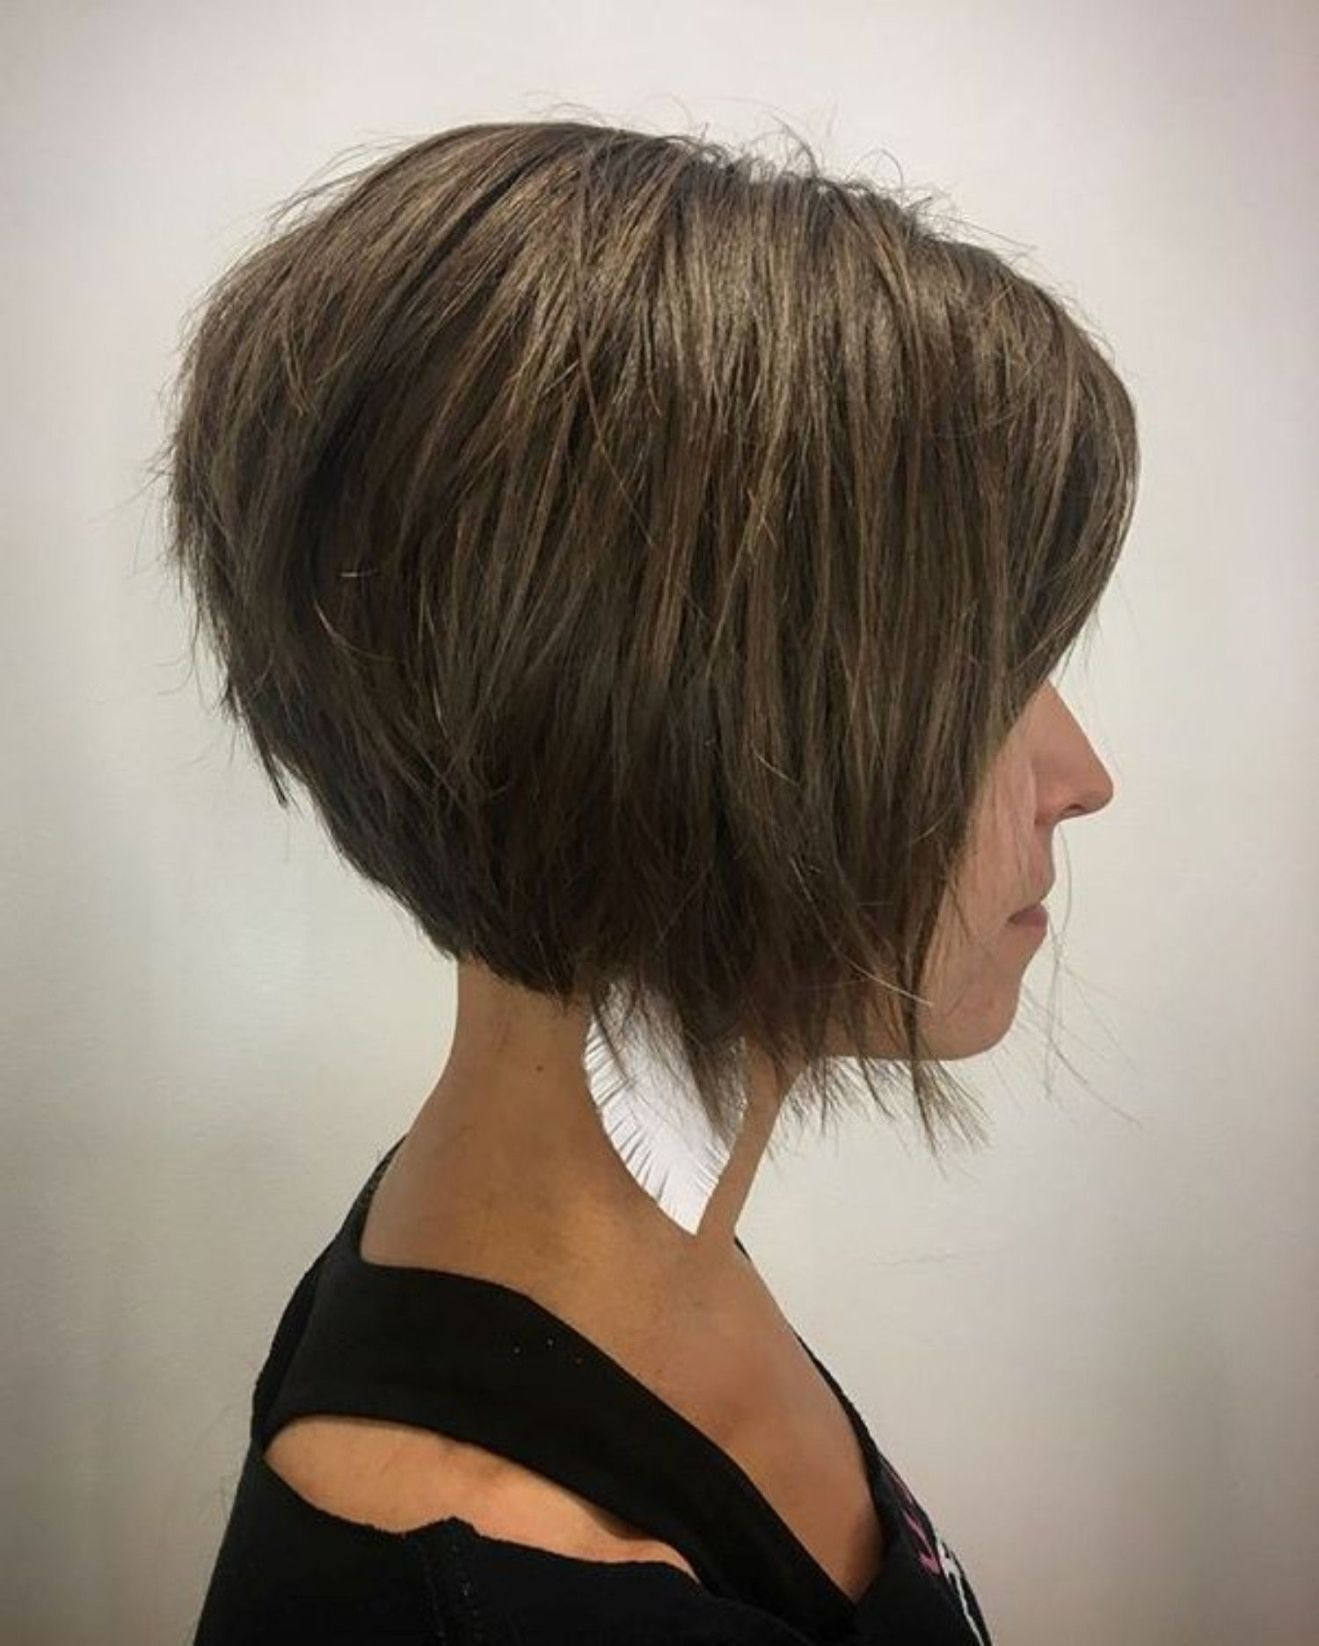 4 Mind-Blowing Short Hairstyles for Fine Hair  Hair styles